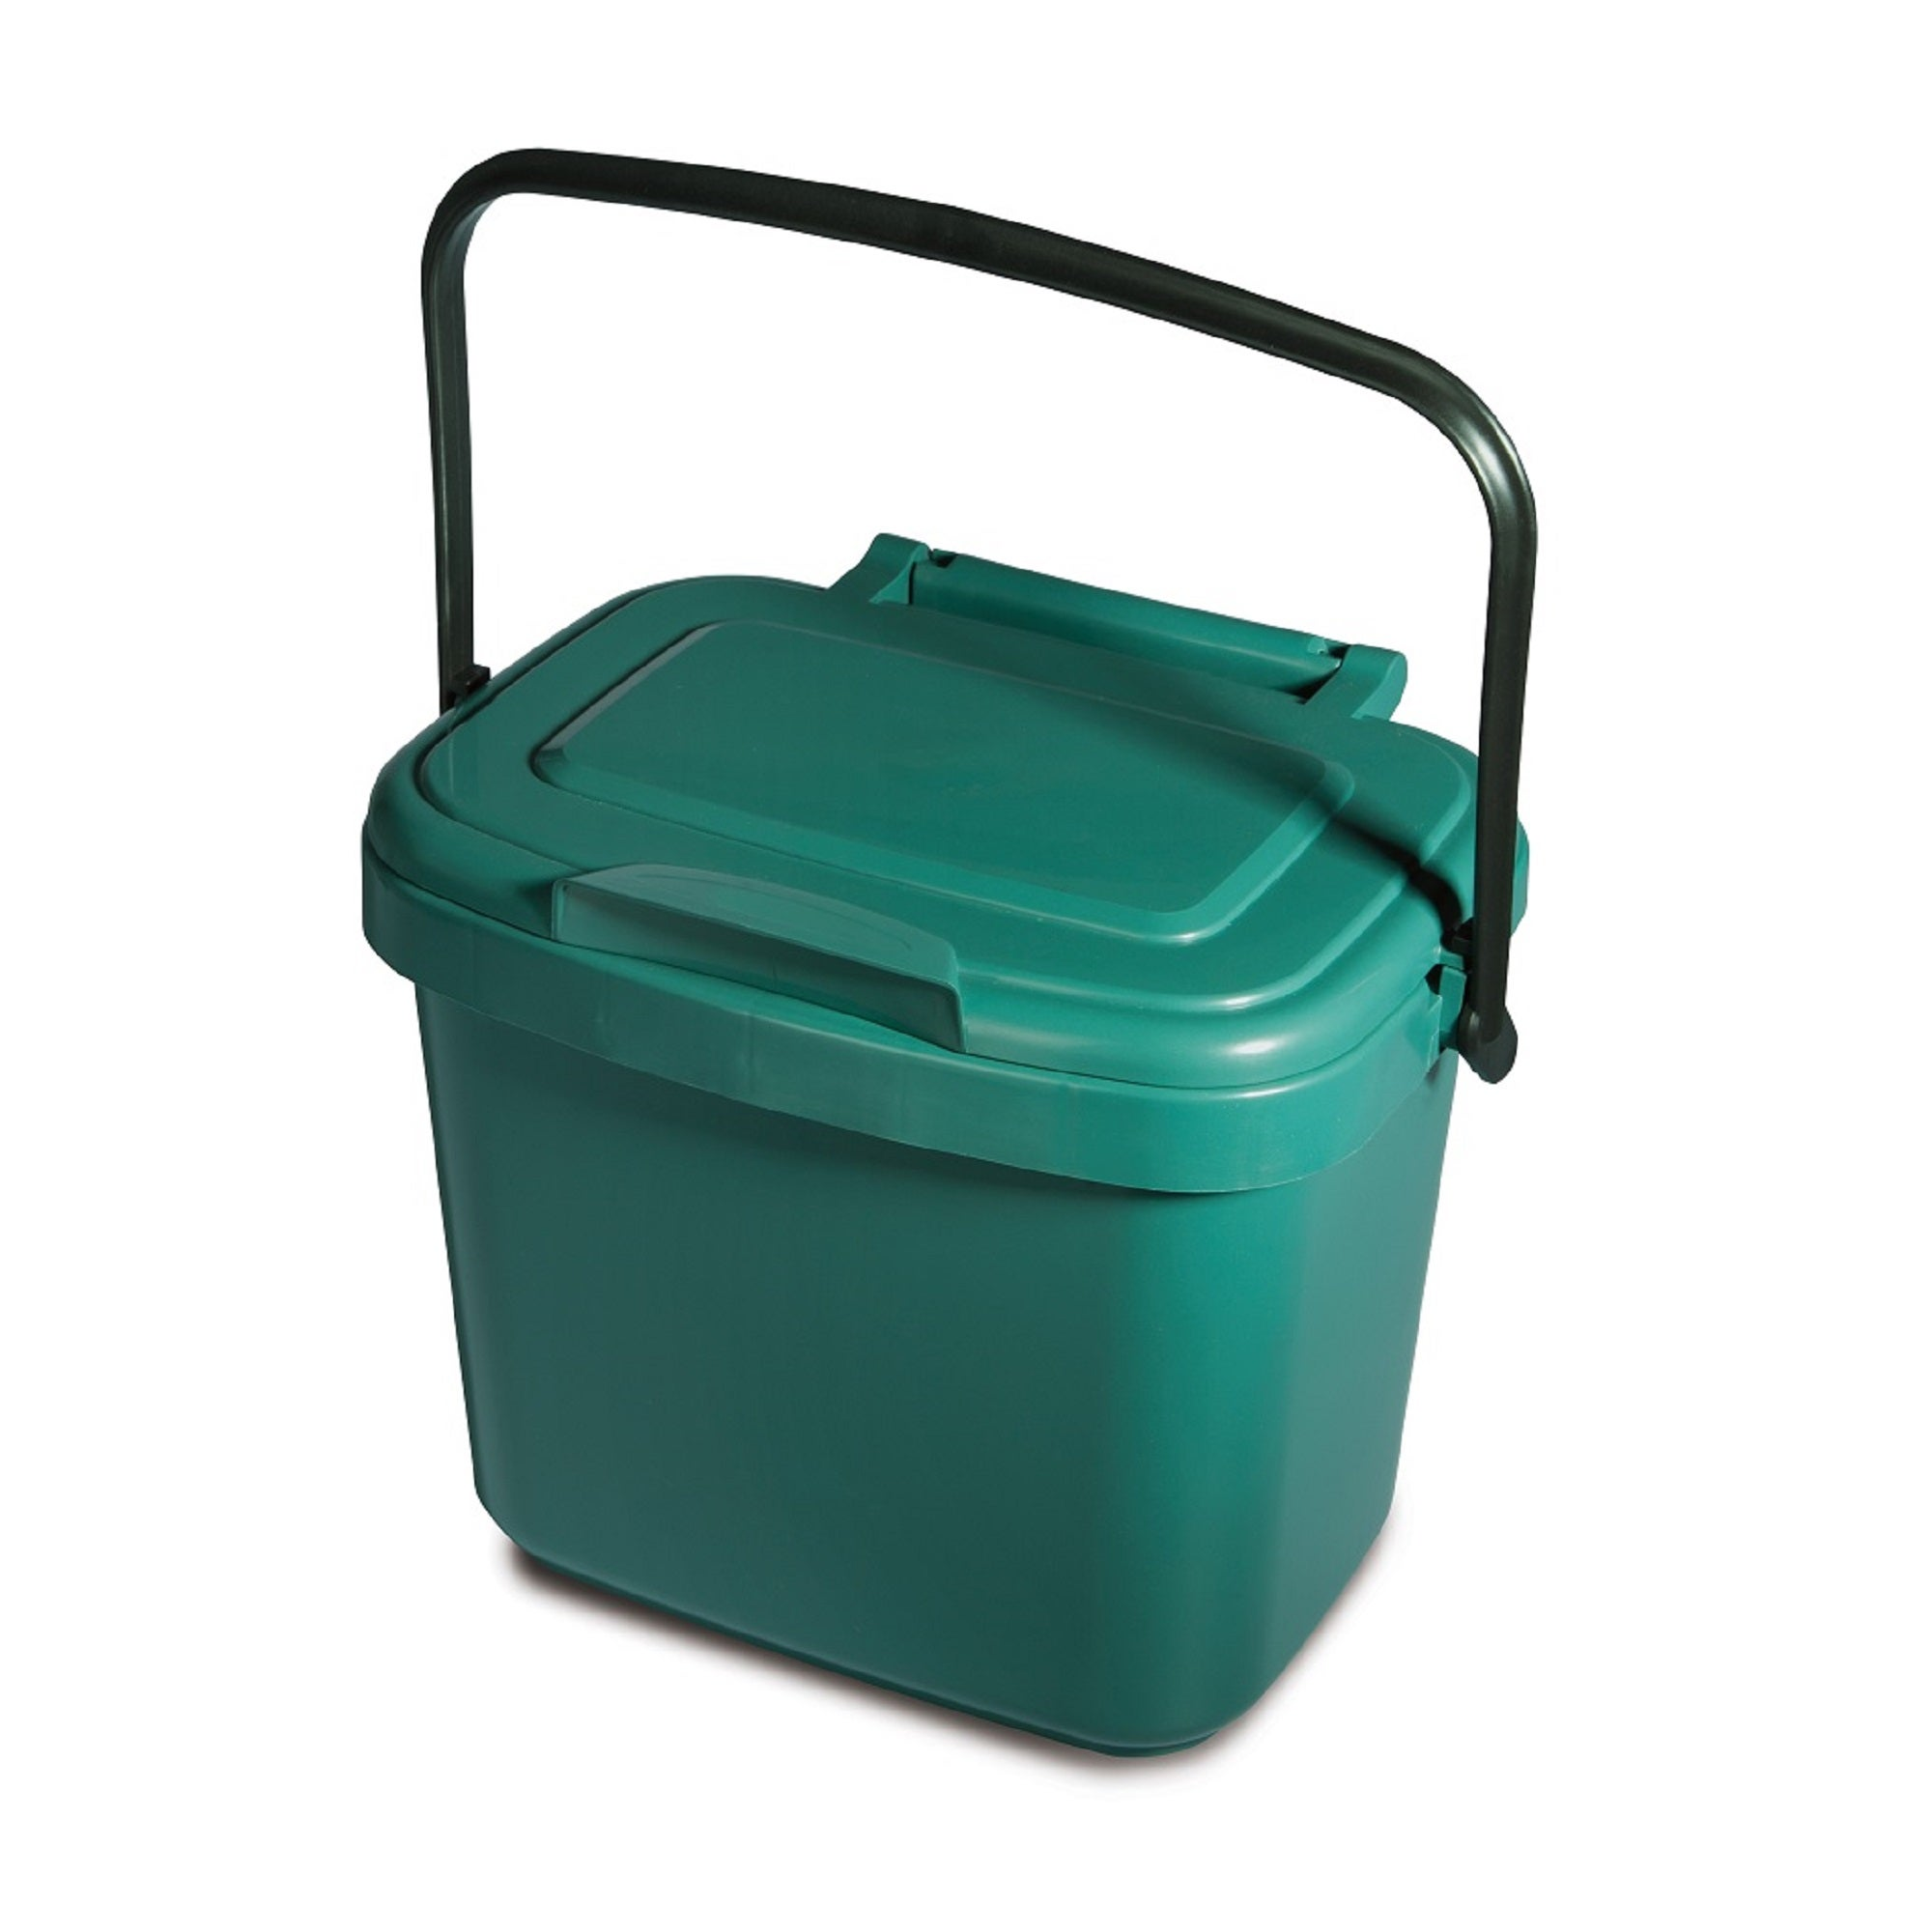 Addis 5 Litre Compost Caddy